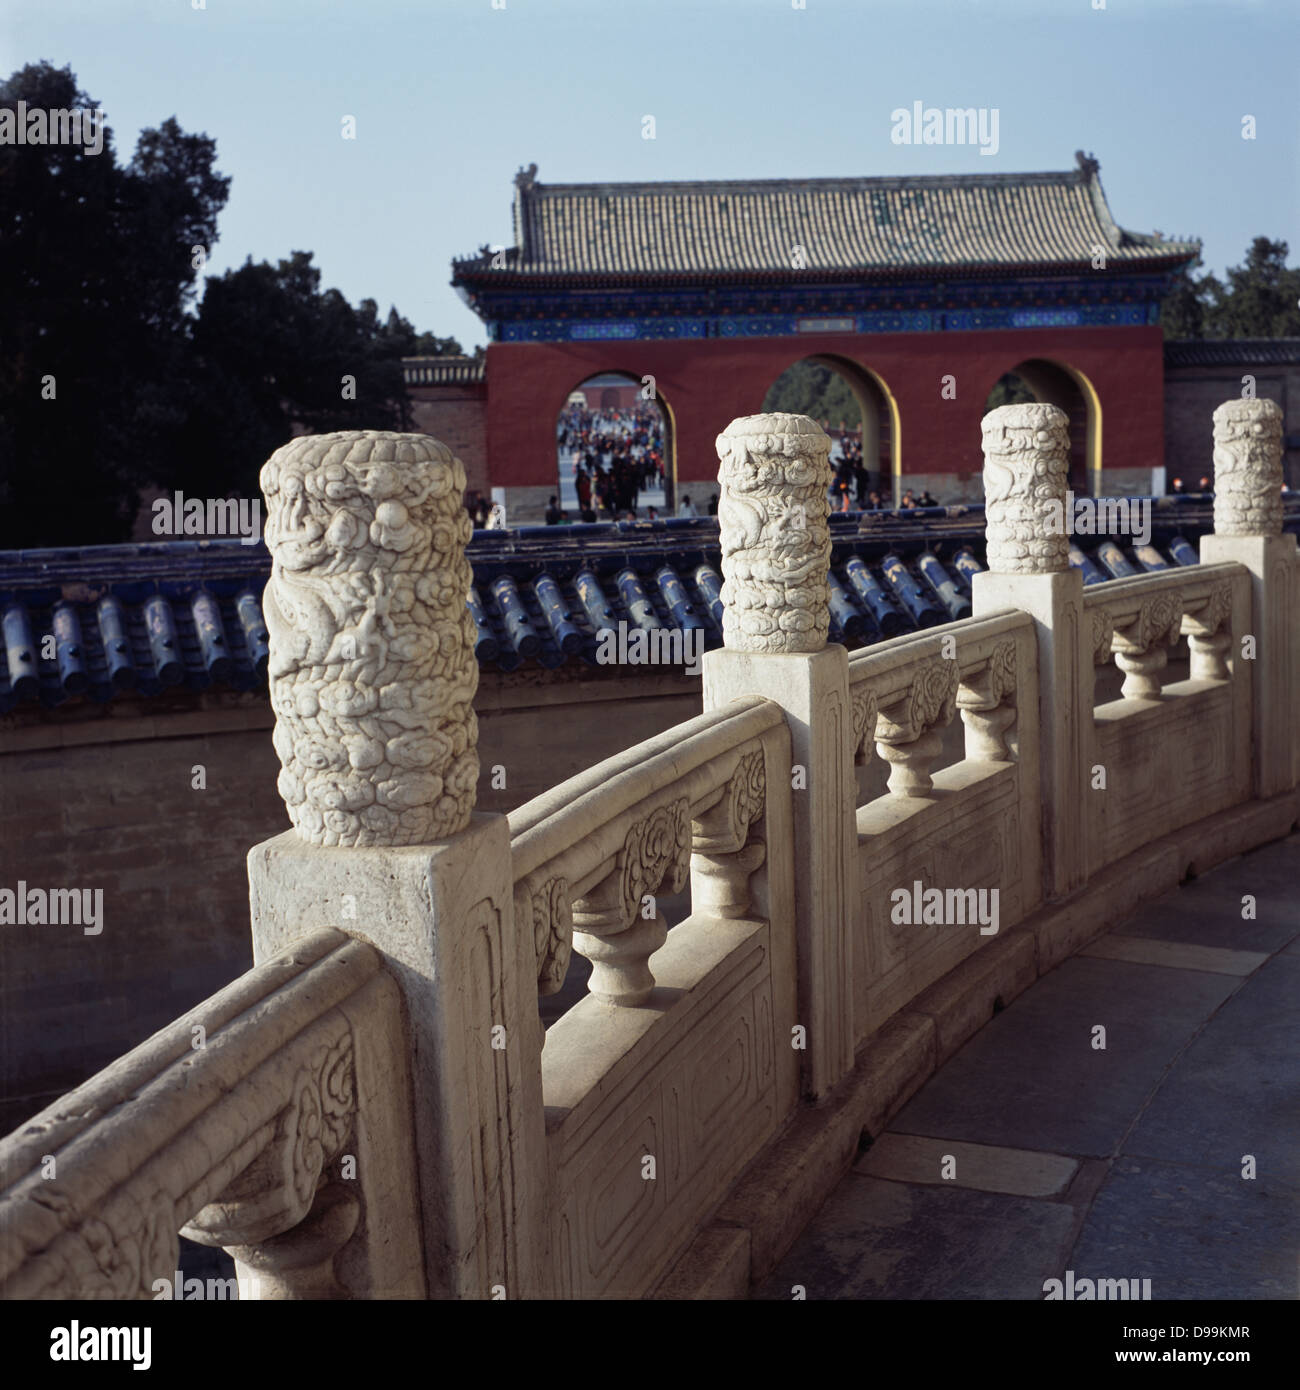 Balustrade in the temple of heaven. 2013 - Stock Image